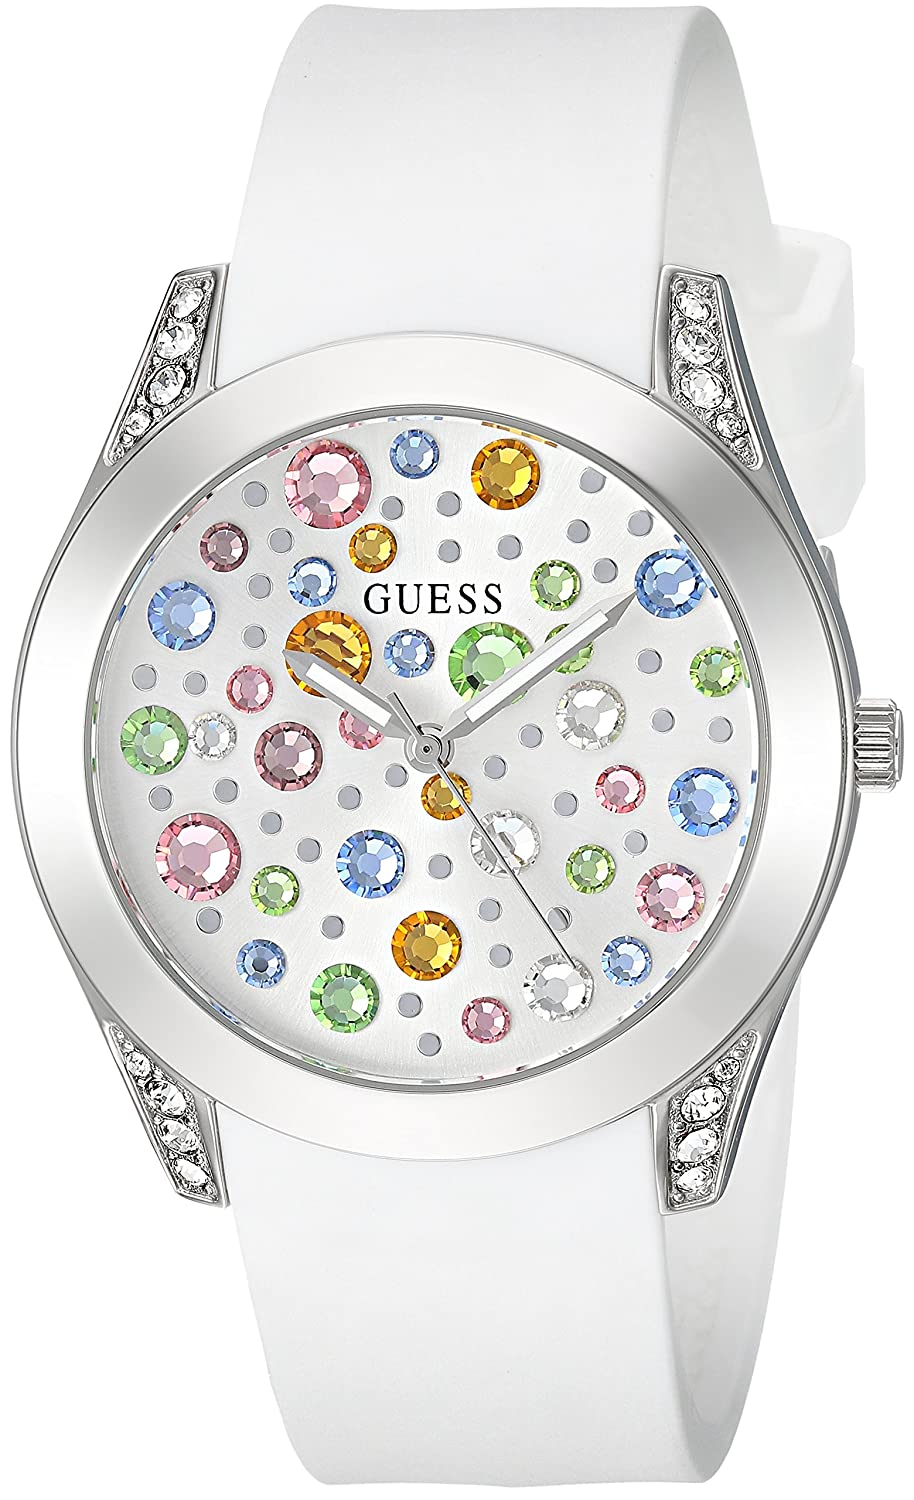 cd9929d12 Amazon.com: GUESS Silver-Tone + White Stain Resistant Silicone  Multi-Colored Crystal Watch. Color: White (Model: U1059L1): Watches